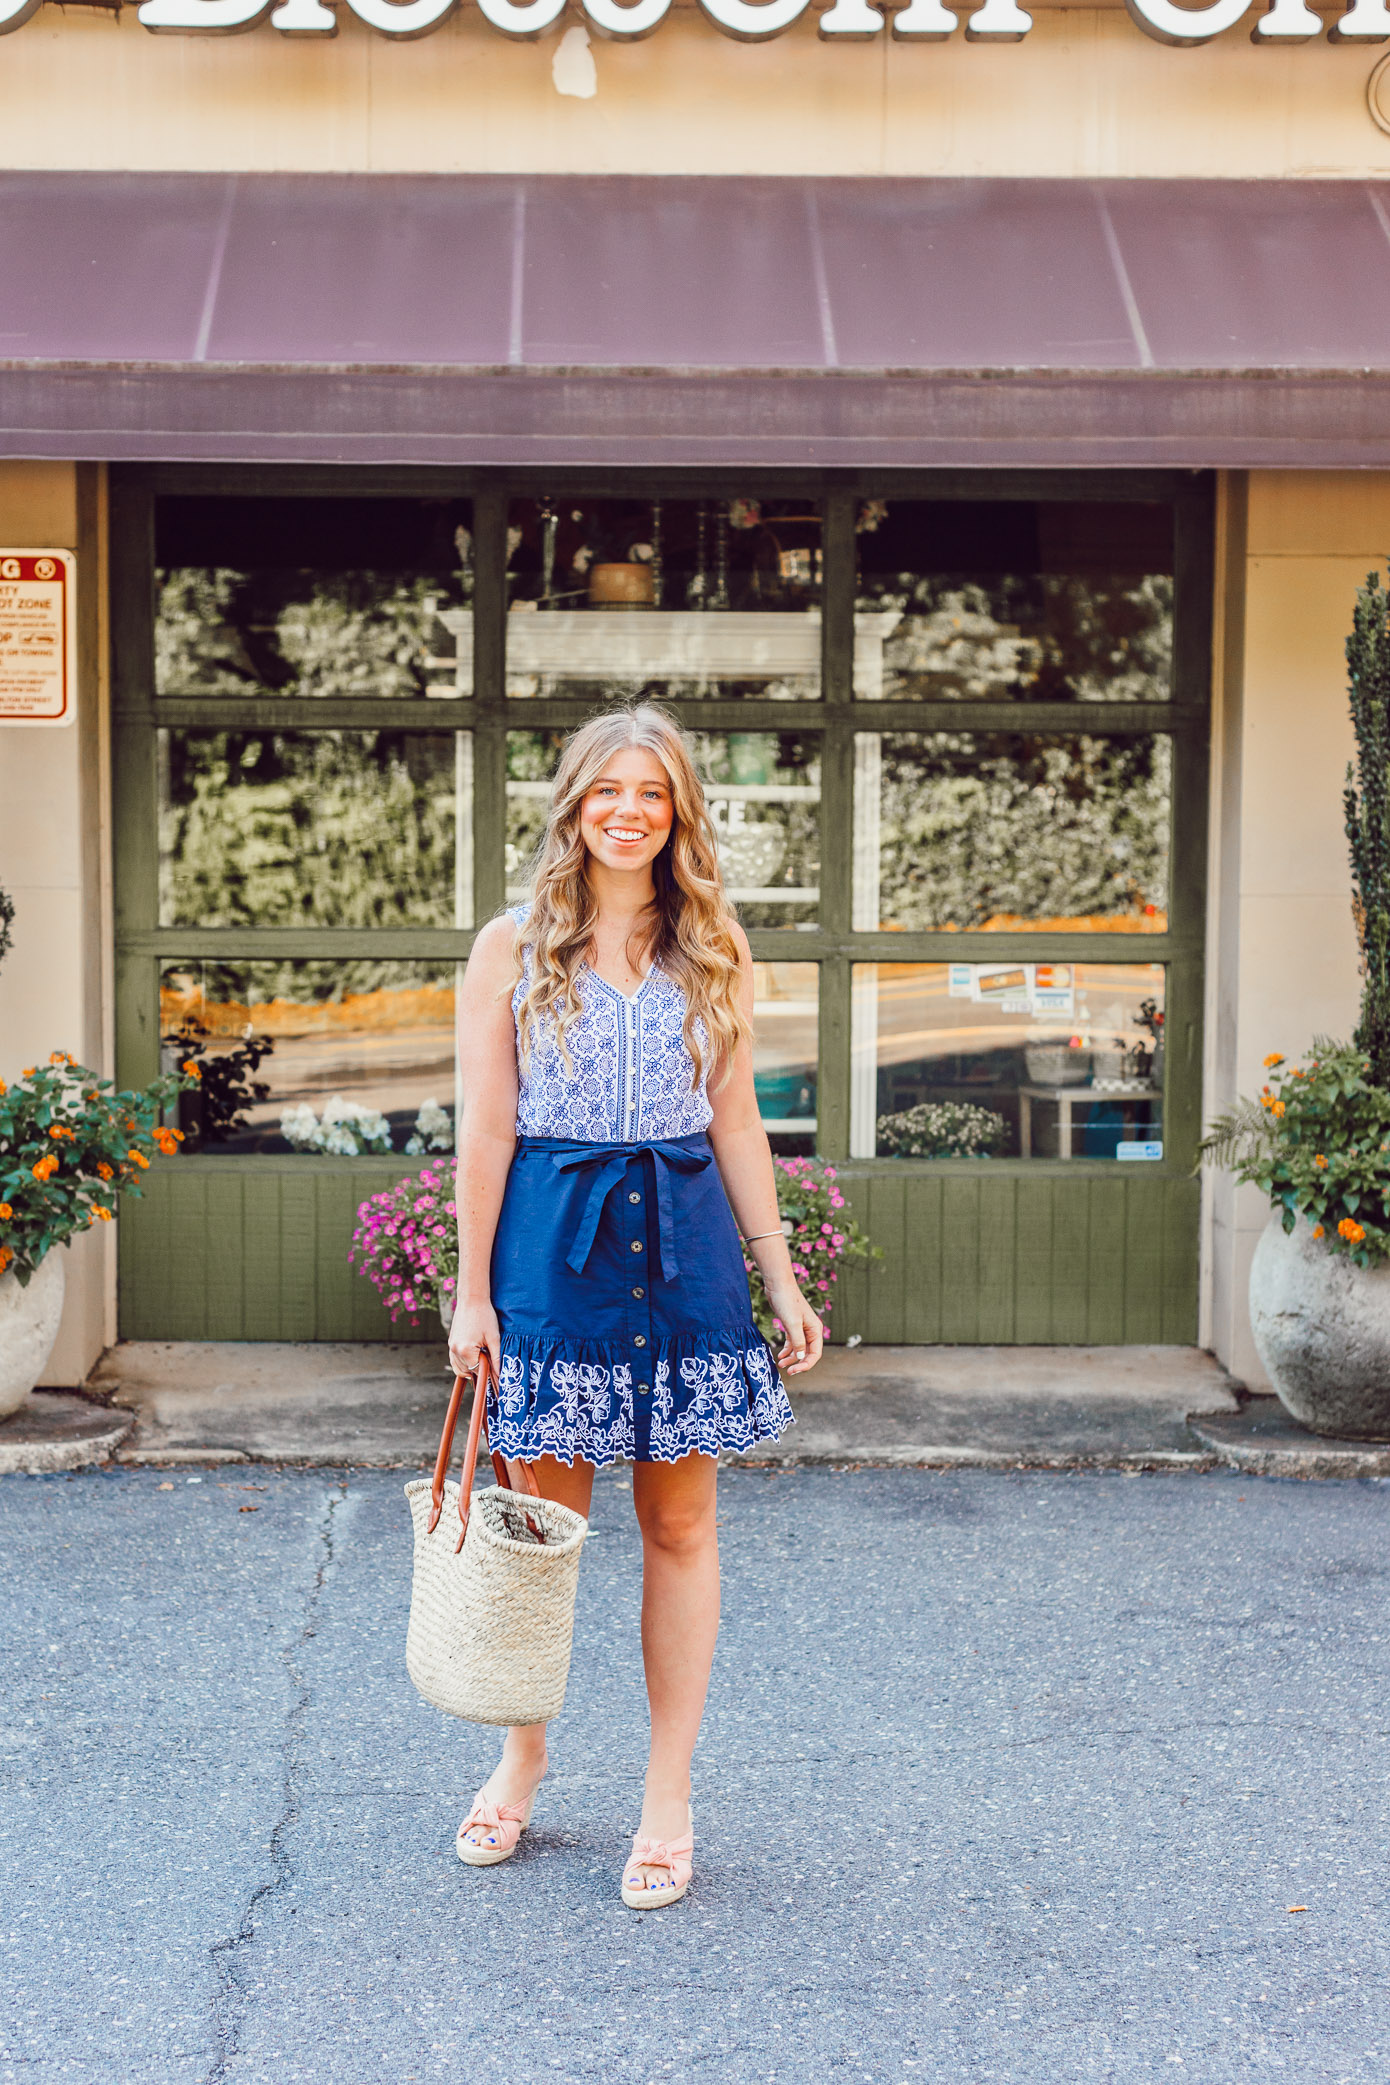 Summer Blues: Favorite Blue and White Pieces for Summer | Navy Embroidered Skirt and Geometric Tank styled on Louella Reese Blog